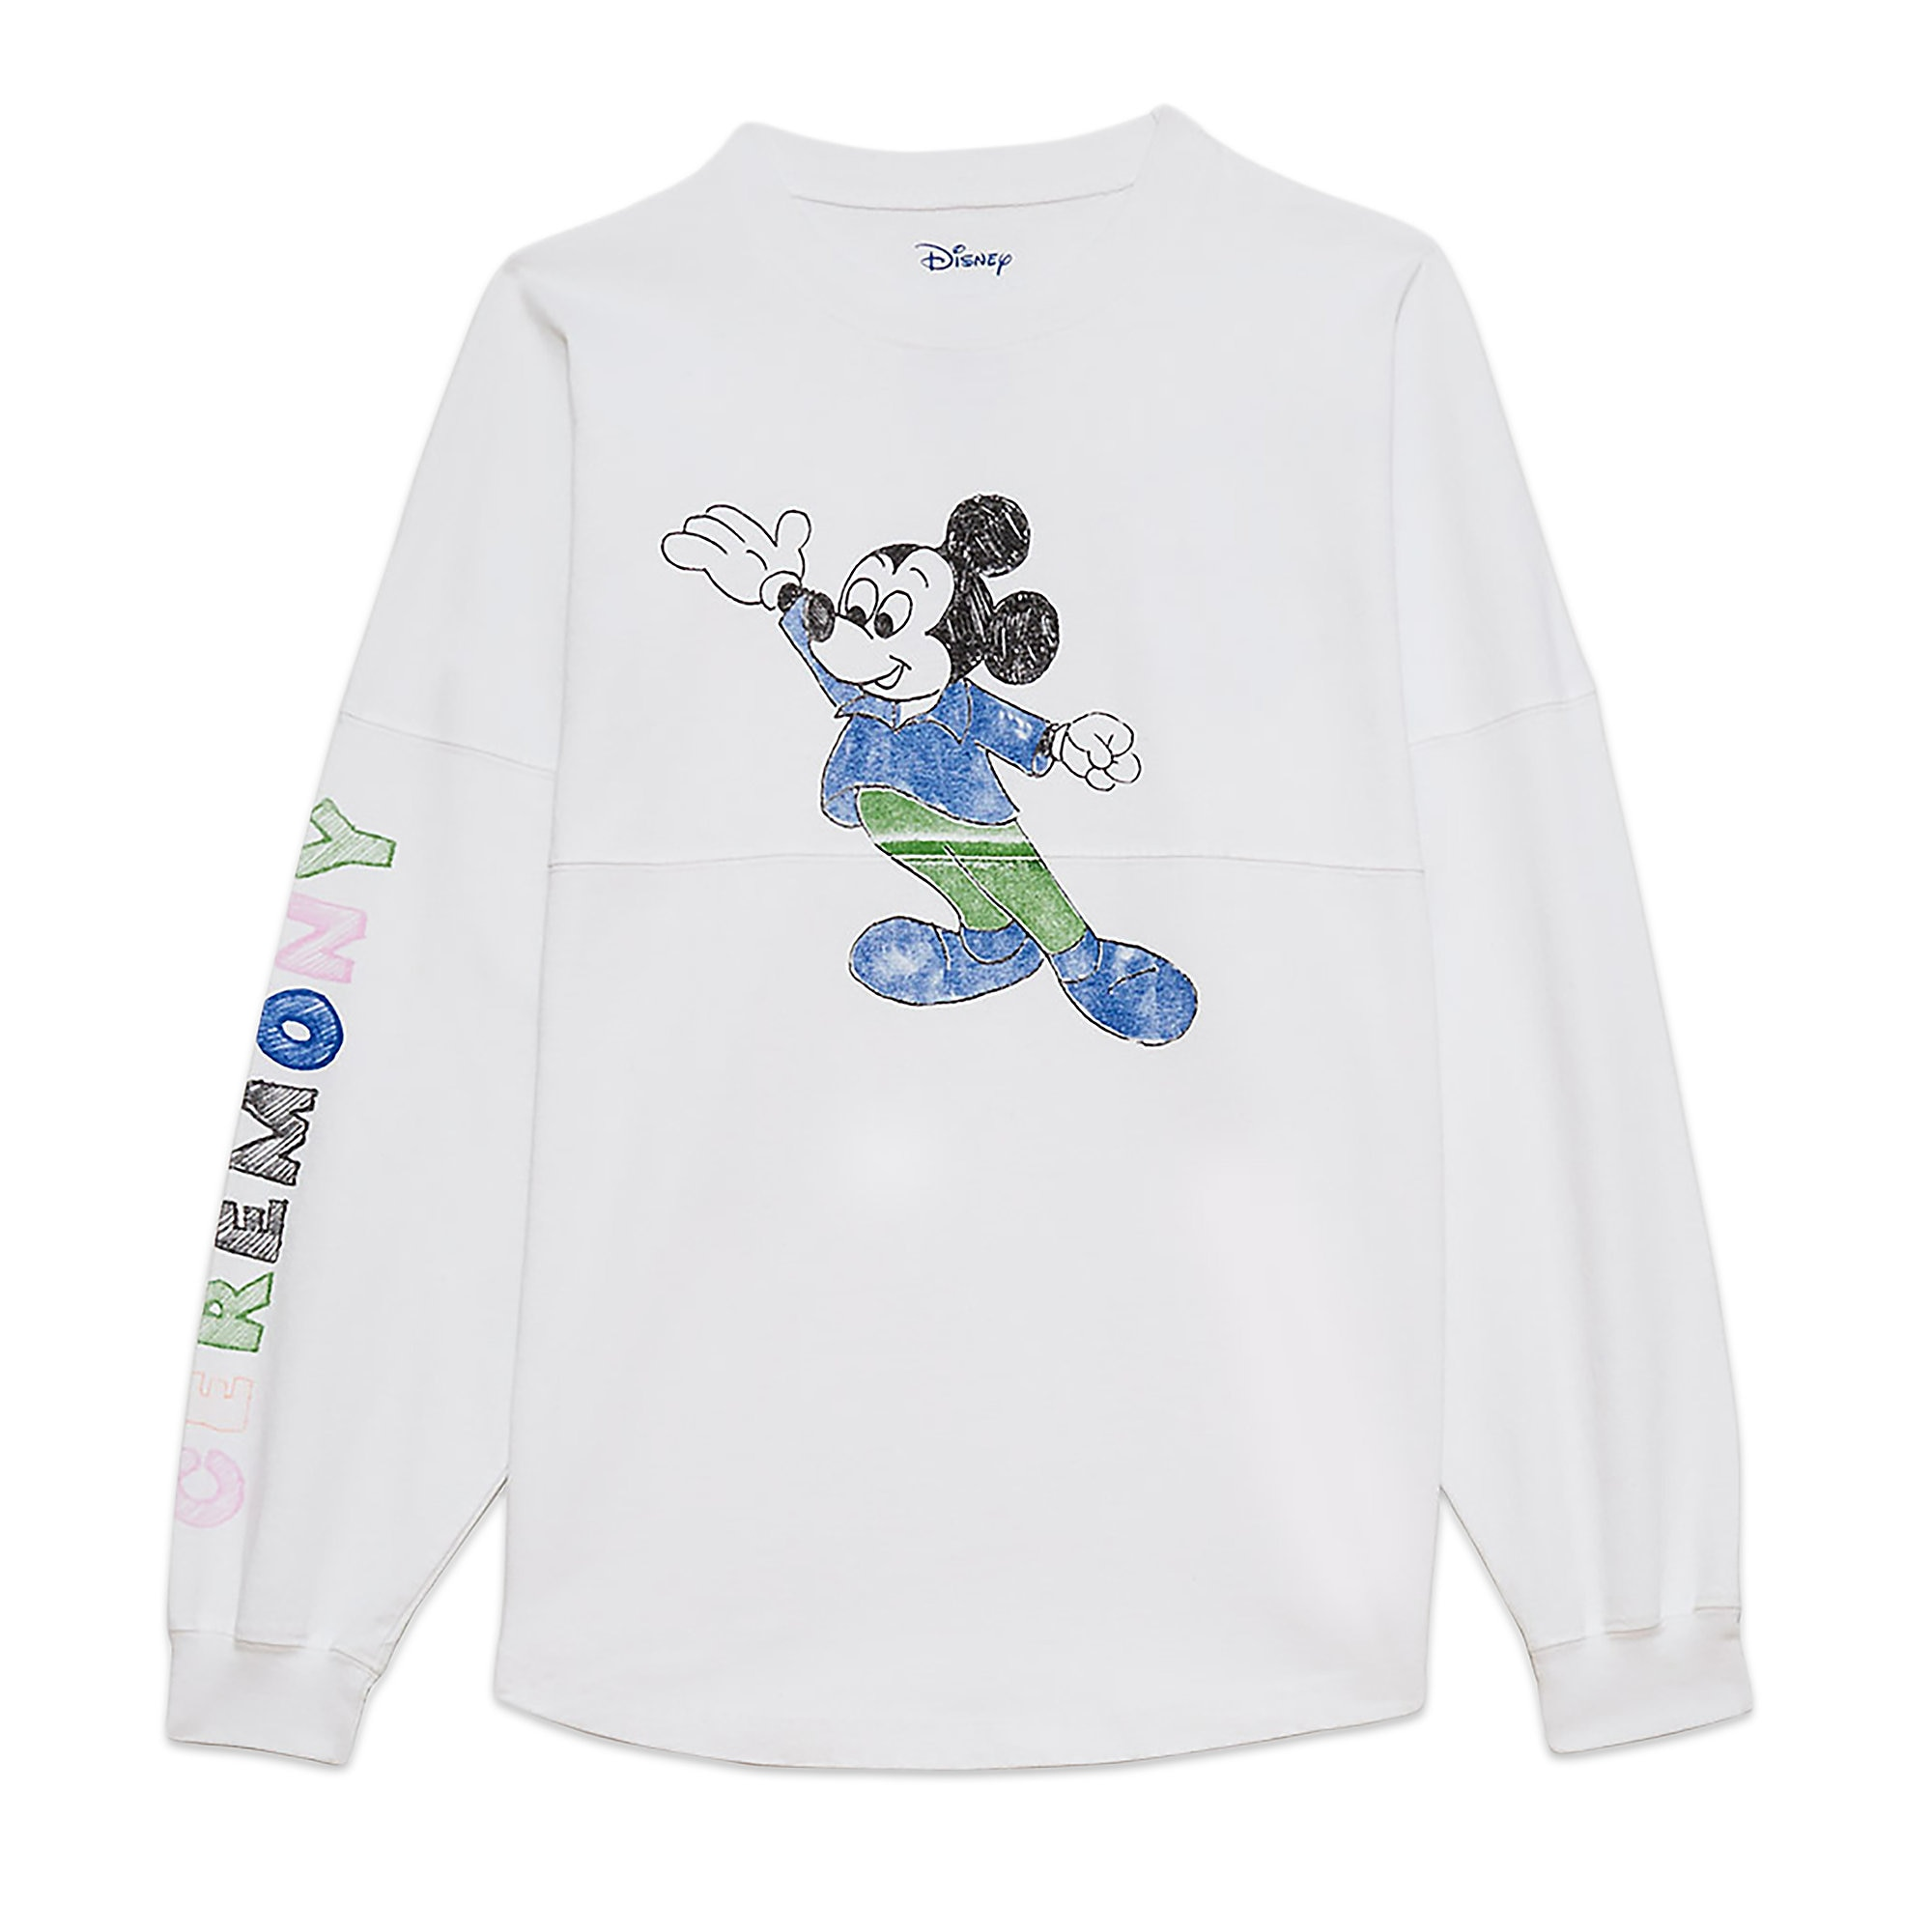 Mickey Mouse Long-Sleeve T-Shirt for Adults by Opening Ceremony